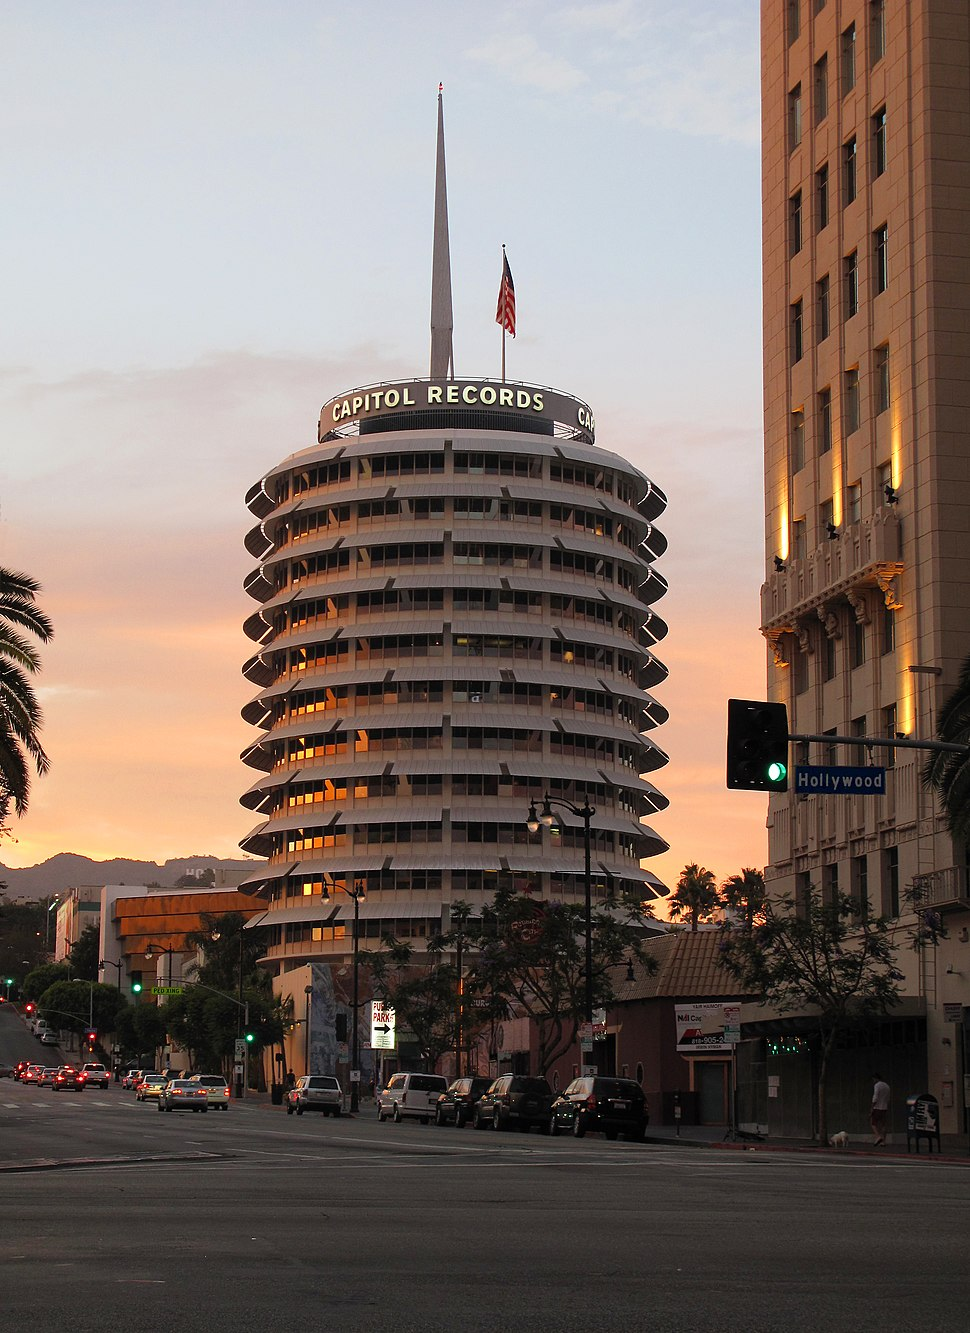 Capitol Records sunset